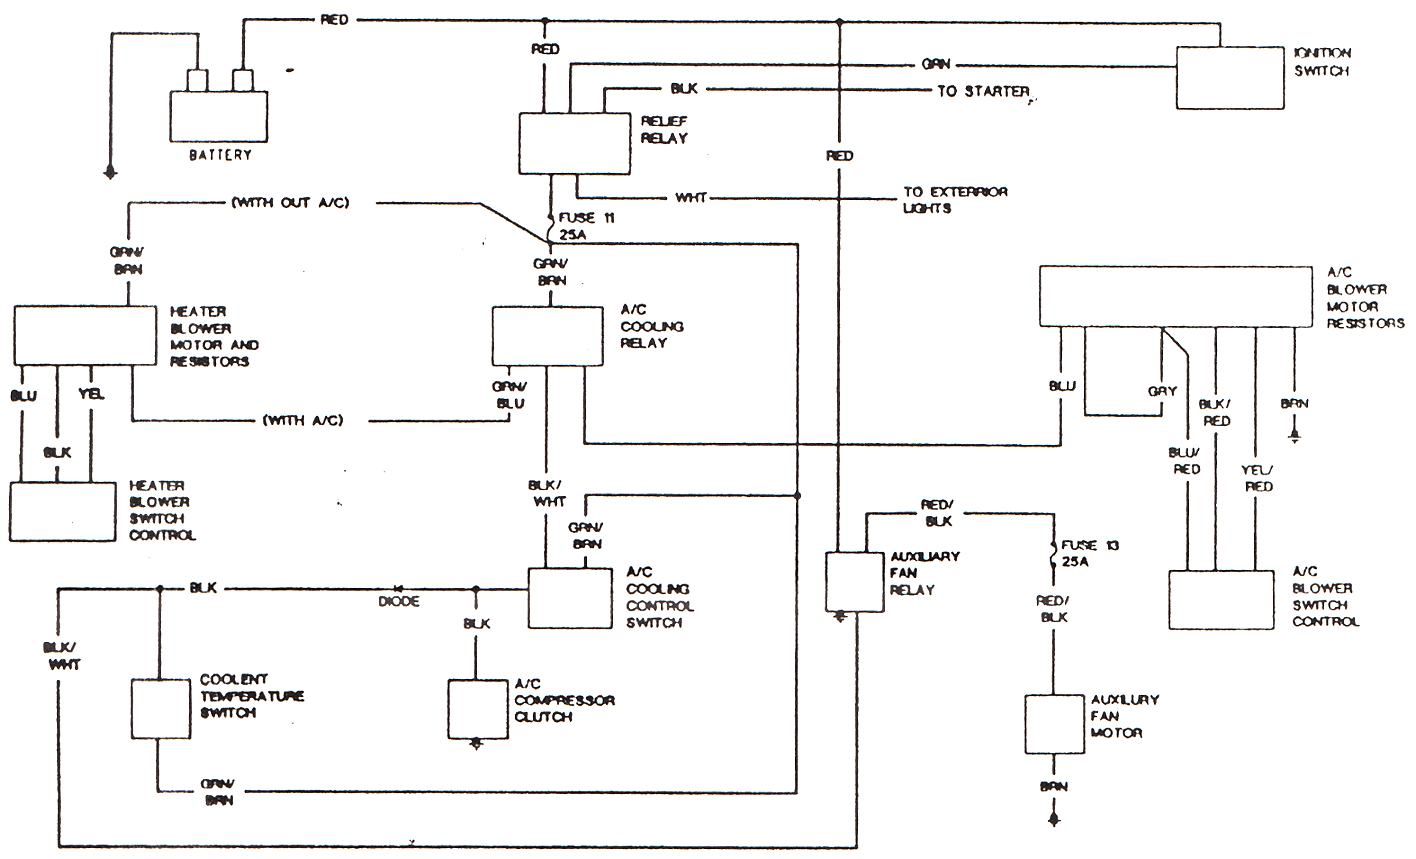 air conditioner wiring diagram additionally furnace blower fan [ 1416 x 859 Pixel ]